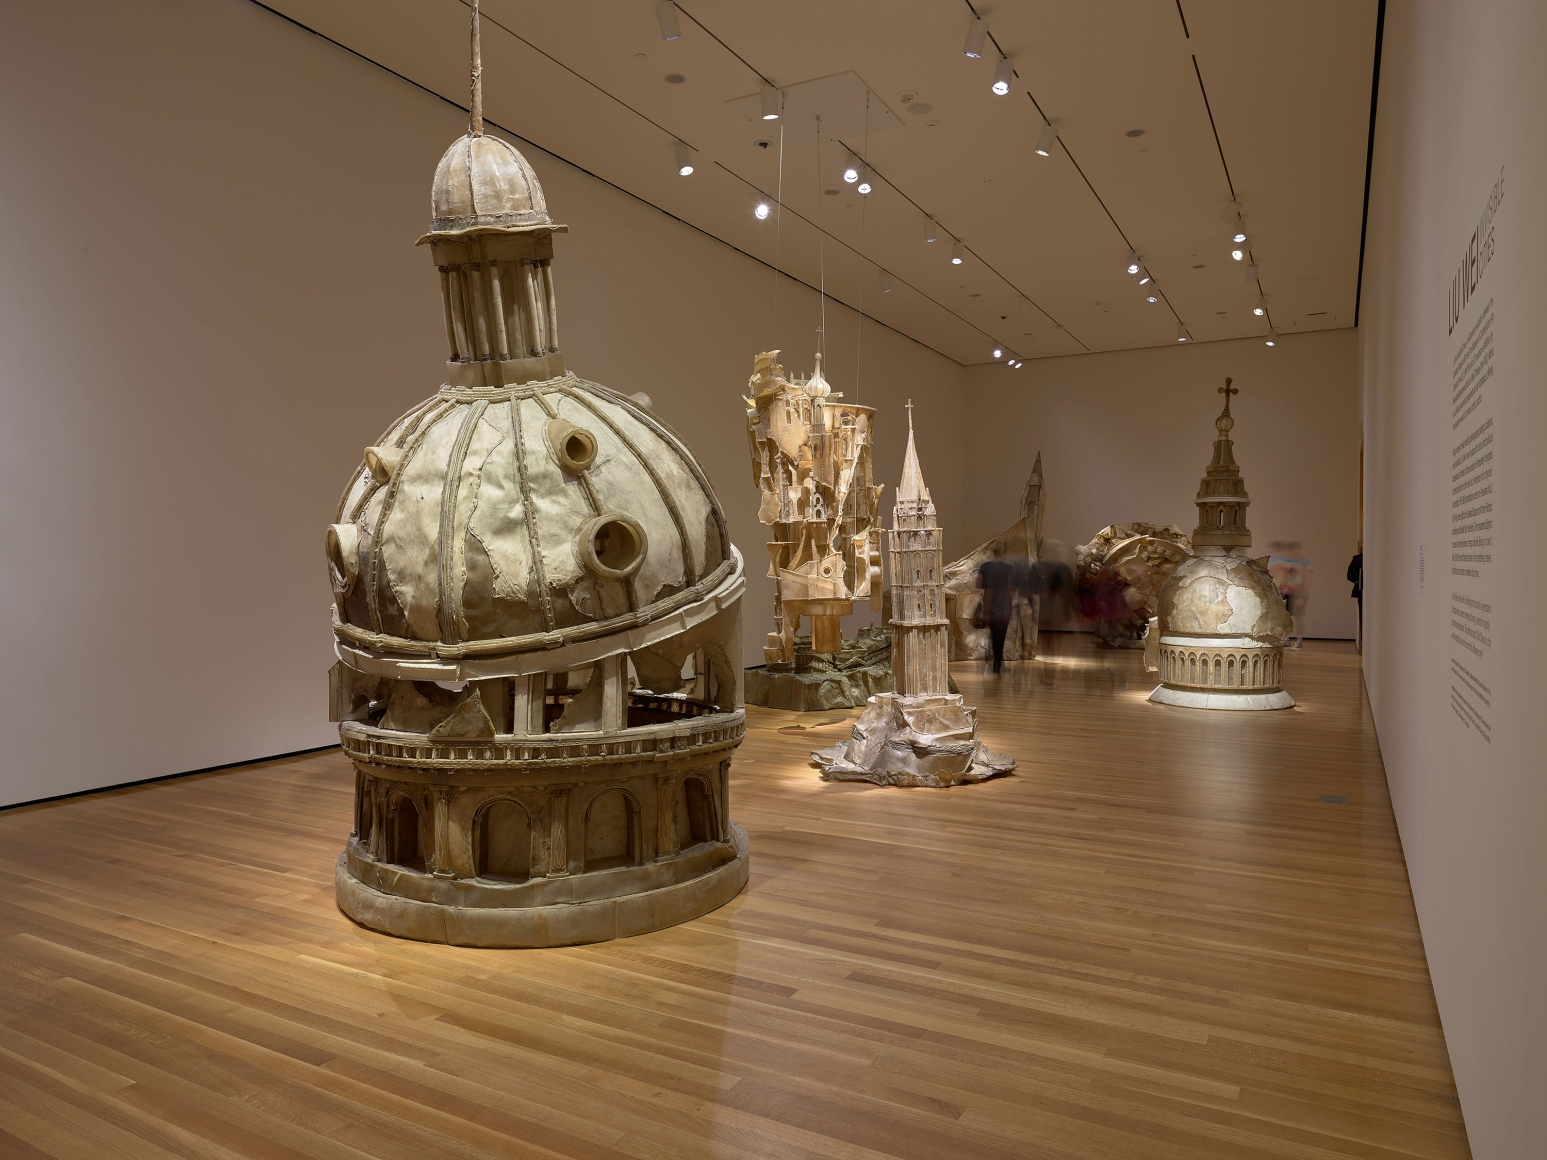 View 2 of Liu Wei's solo museum exhibition titled Invisible Cities at the Cleveland Museum of Art